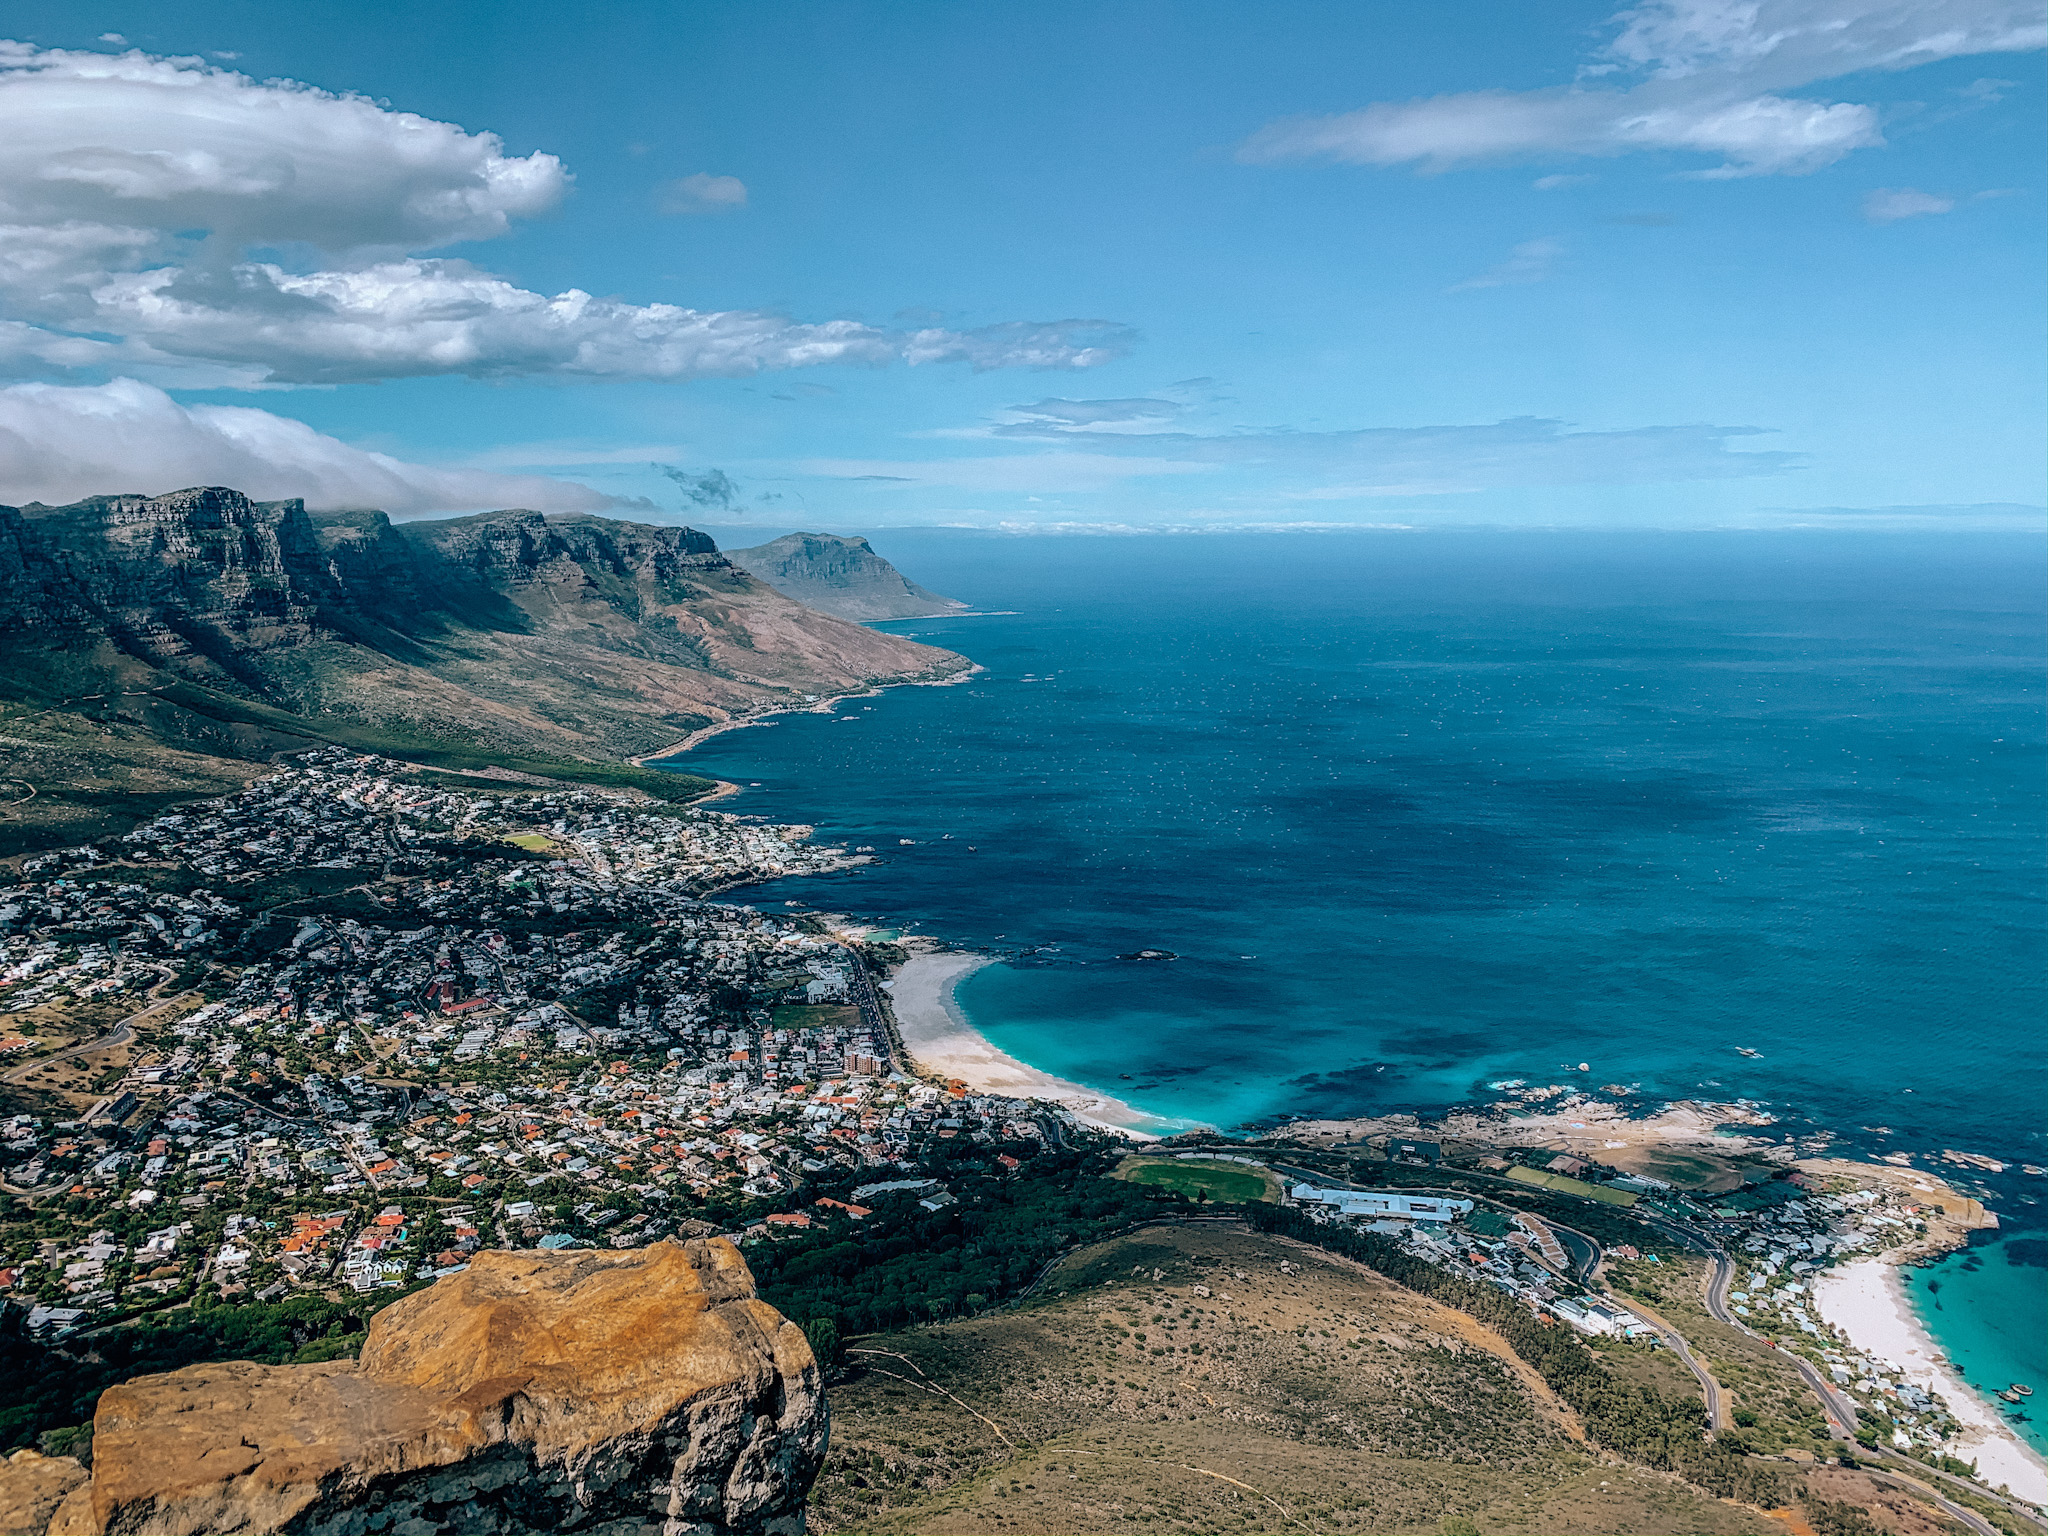 View of Camps Bay from Lion's Head. Photo: Kellie Paxian